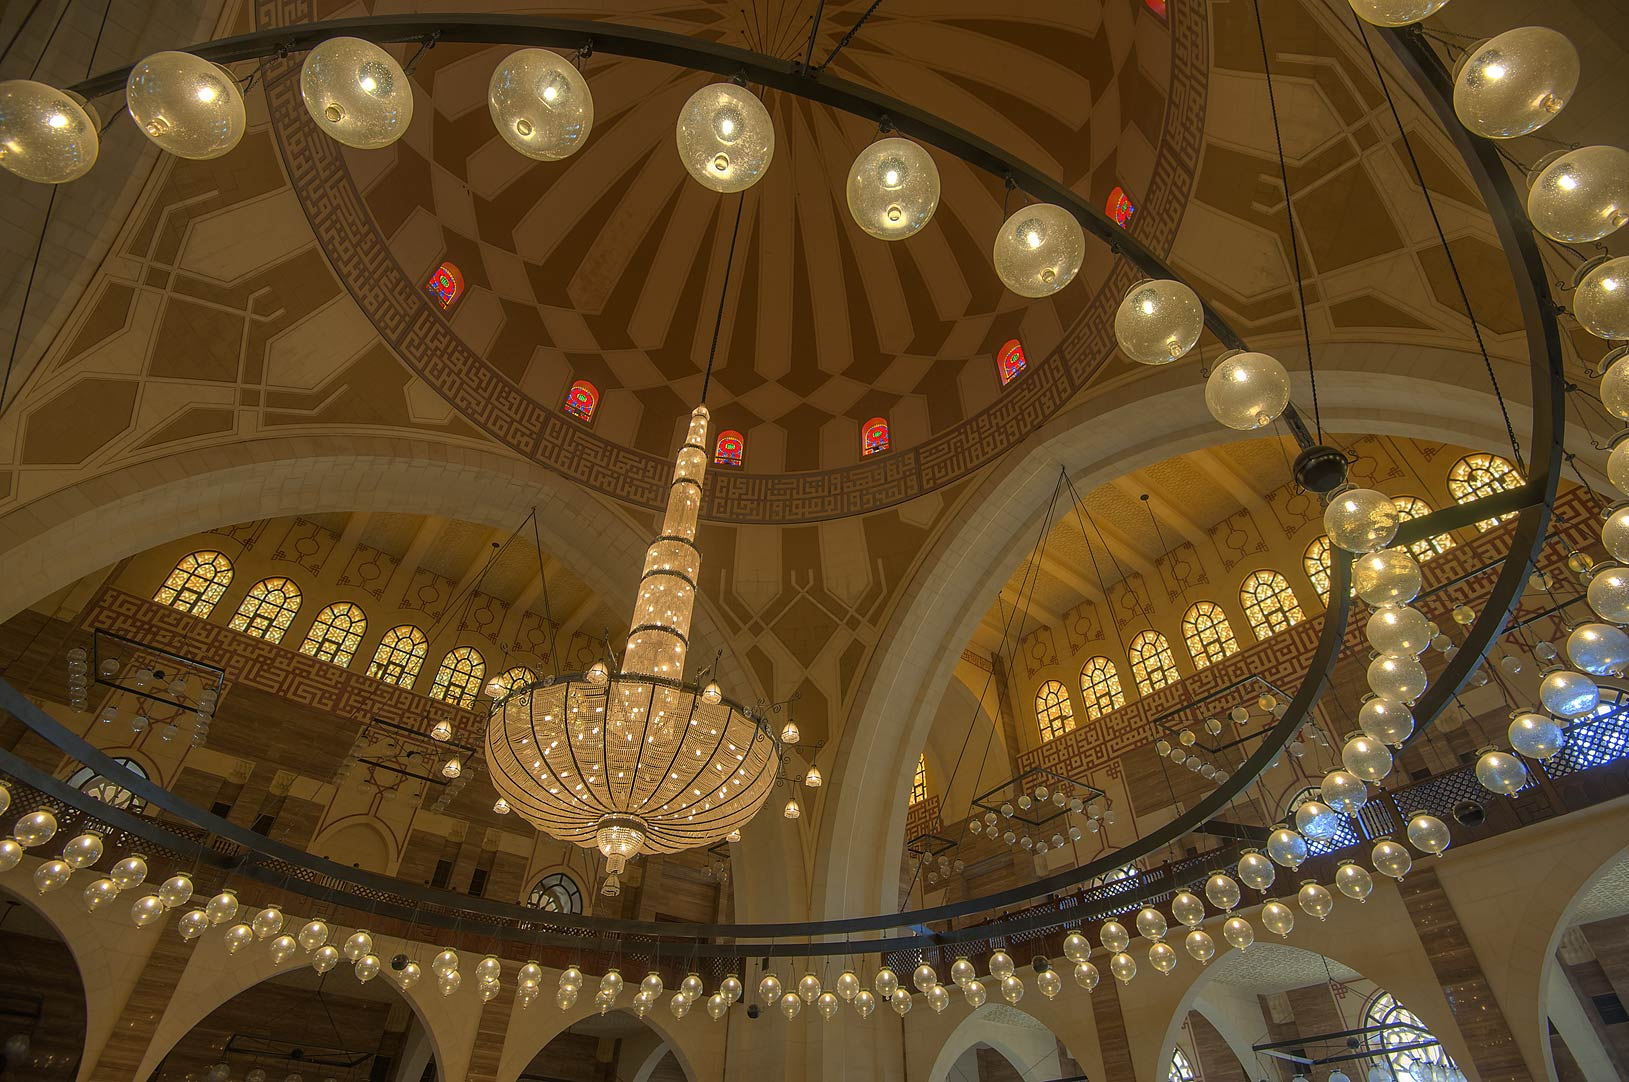 Lamps of Austrian chandelier in Ahmed Al Fateh Mosque. Manama, Bahrain